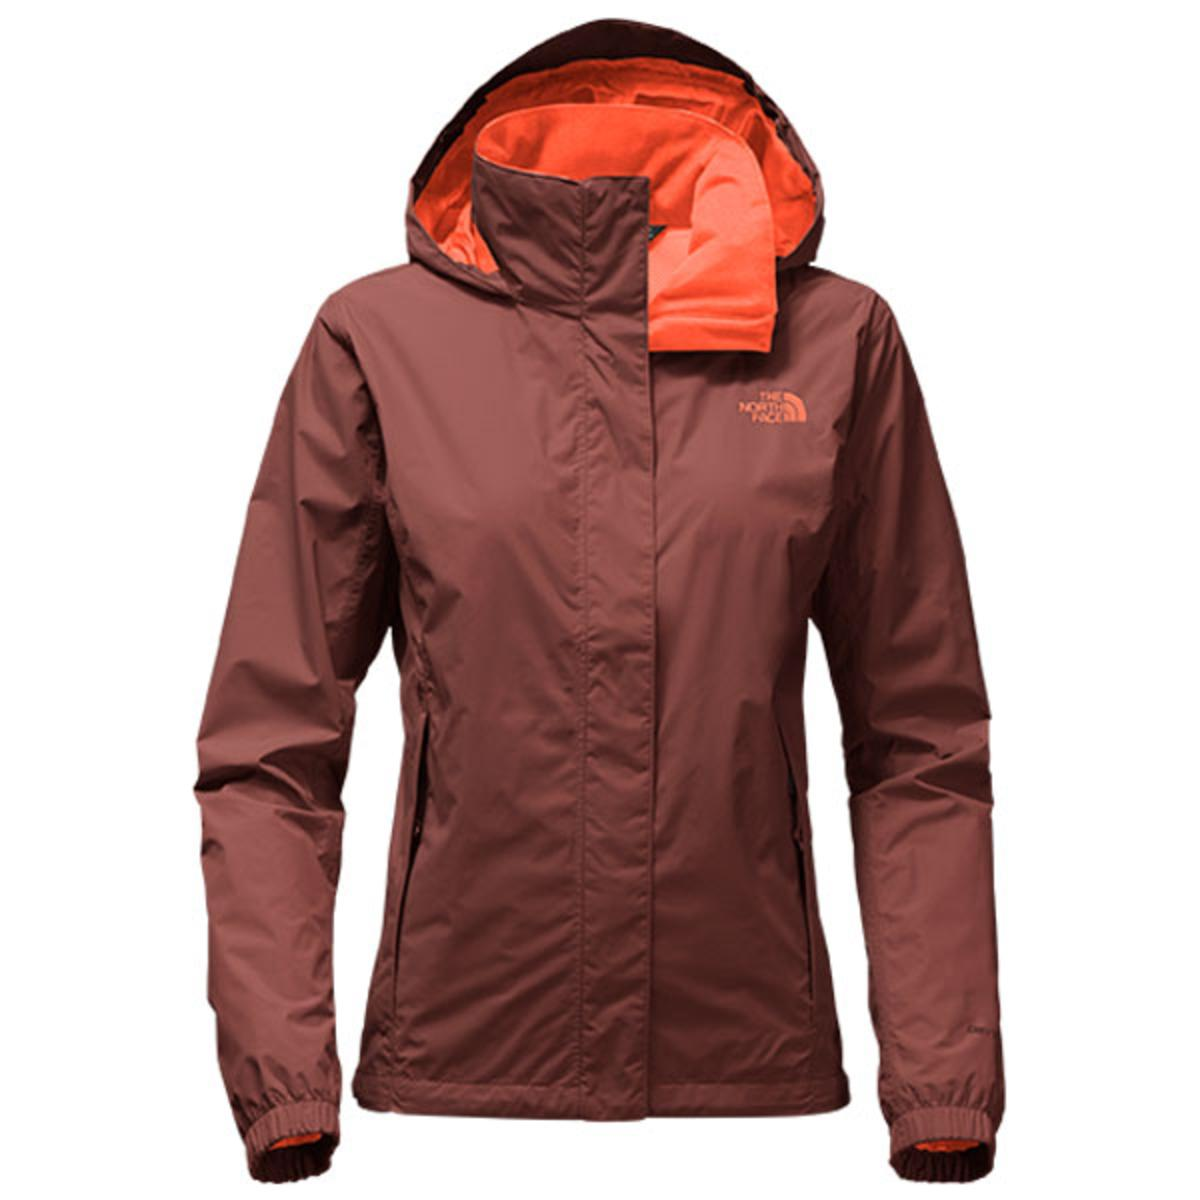 The North Face Women s Resolve 2 Jacket - Sequoia Red - The Warming ... 62e71d812